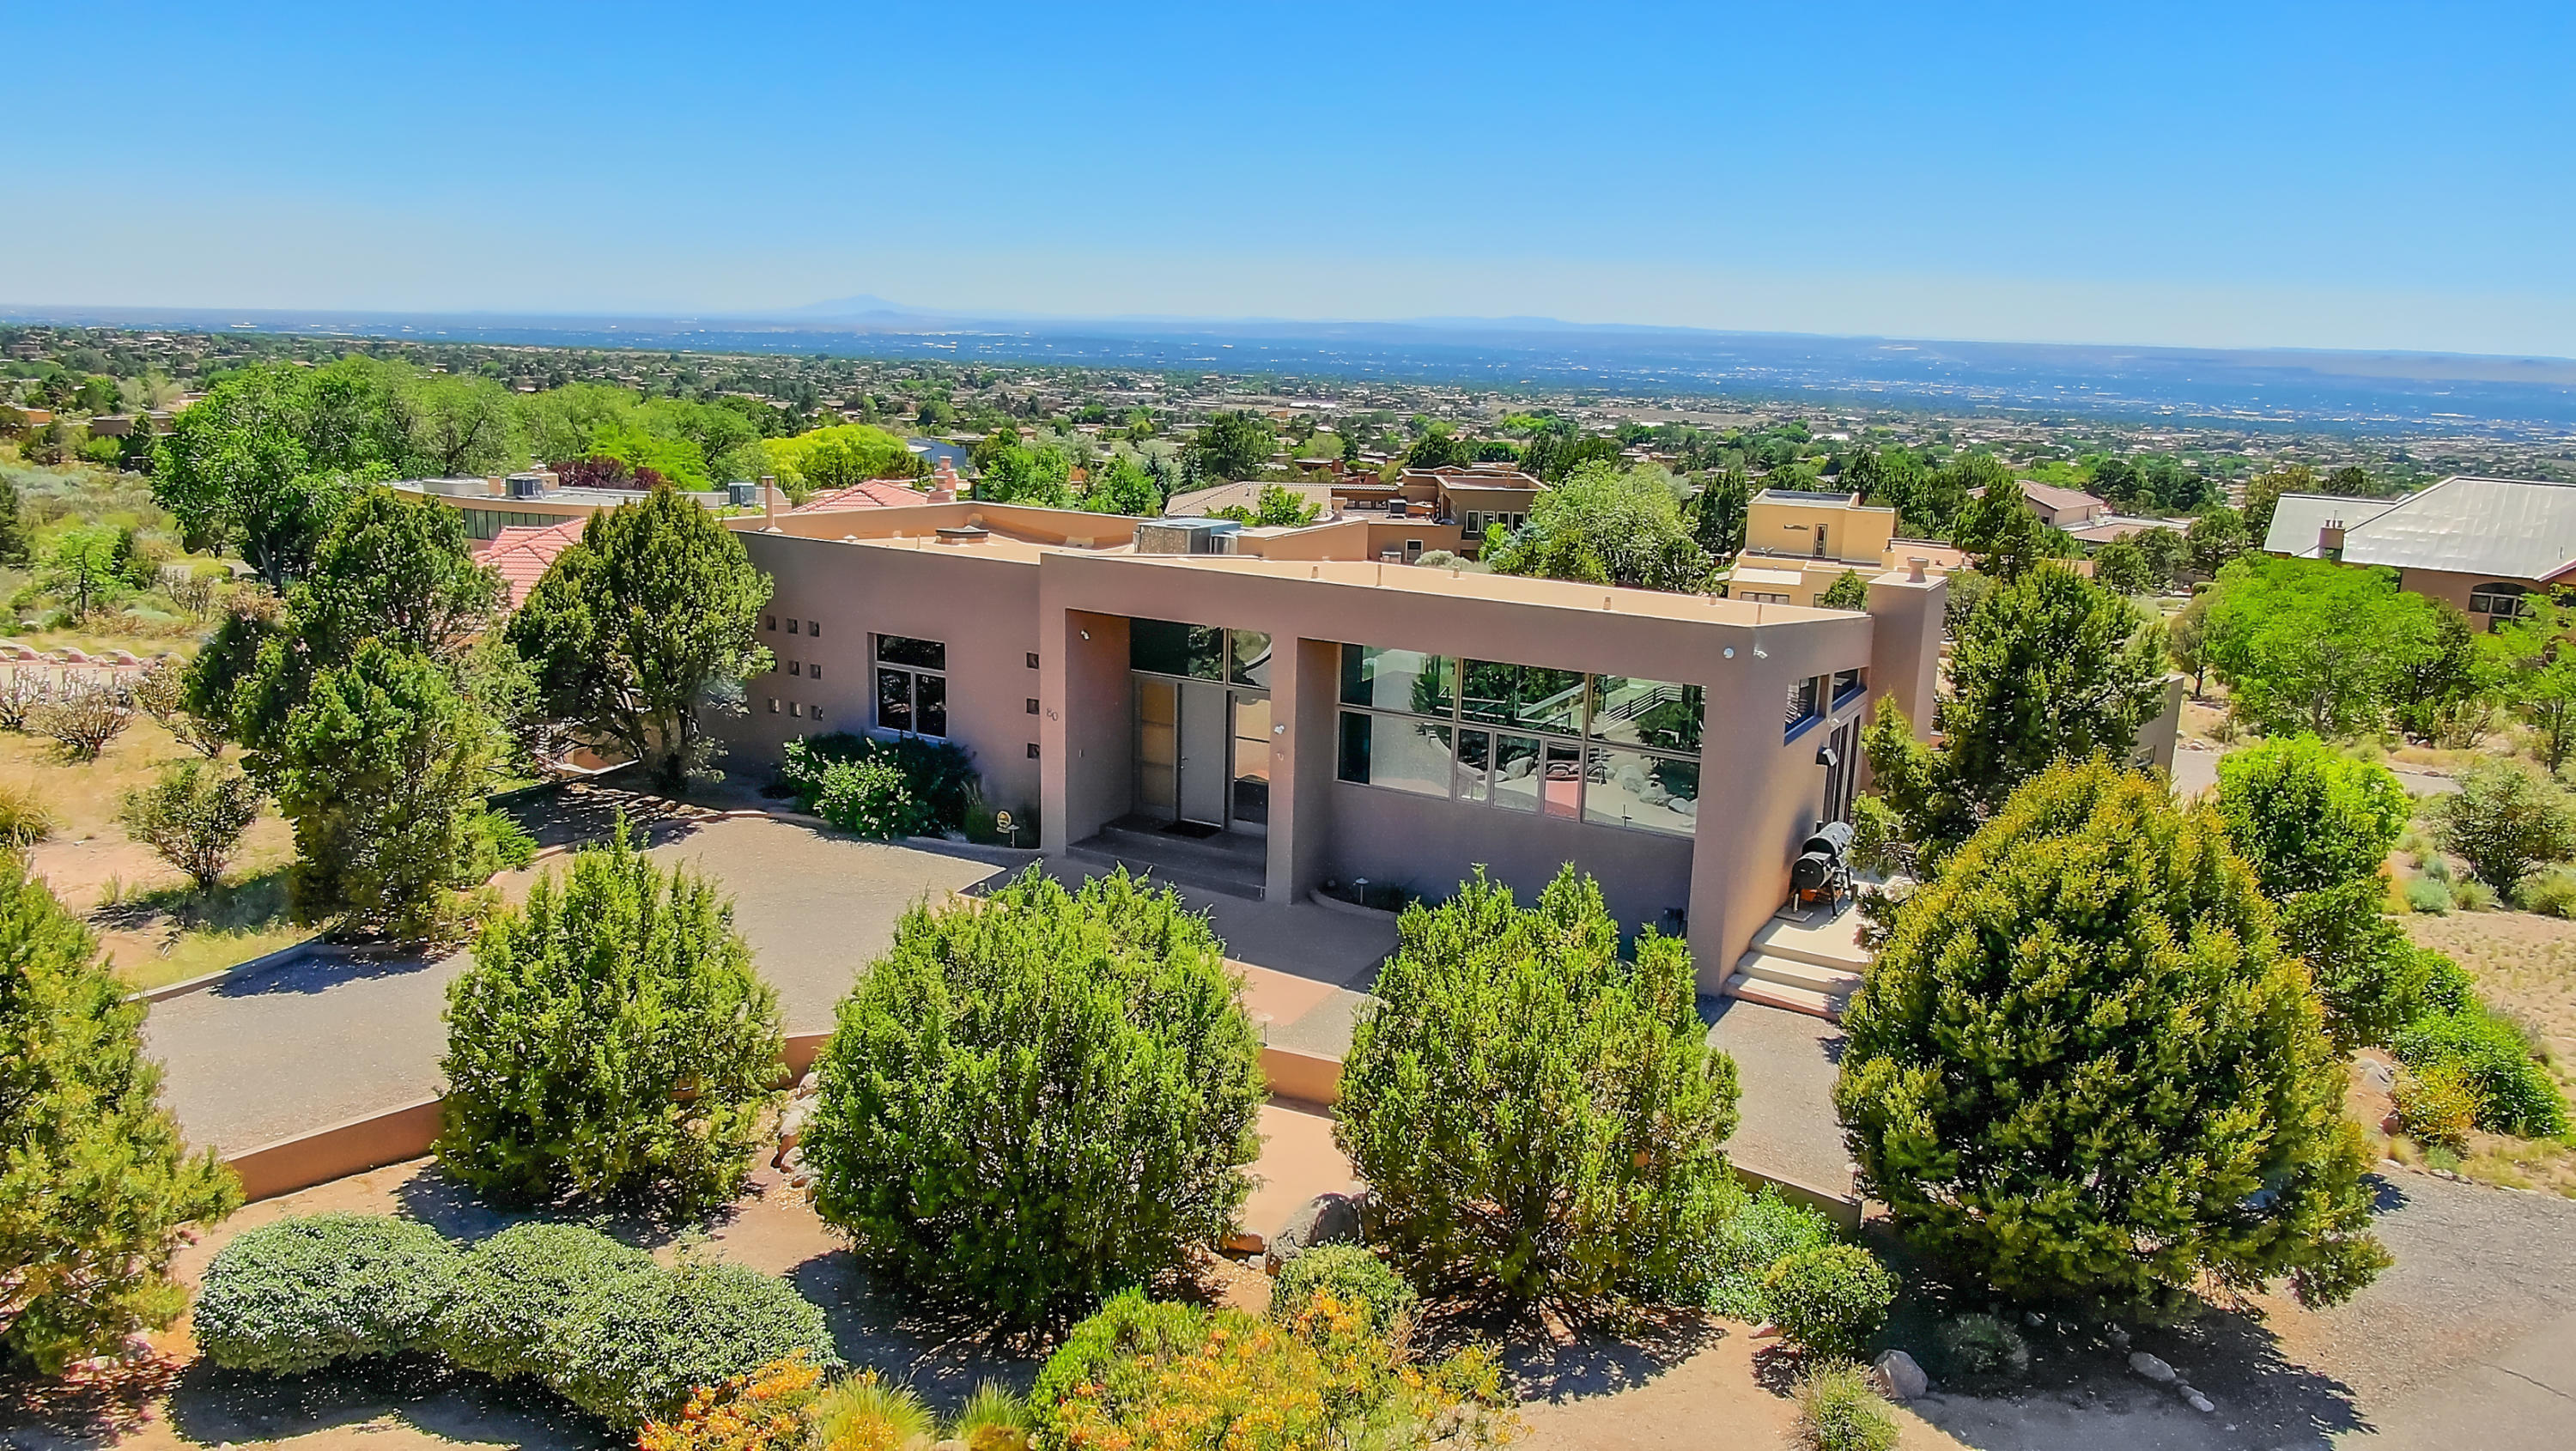 80 JUNIPER HILL Place NE Property Photo - Albuquerque, NM real estate listing